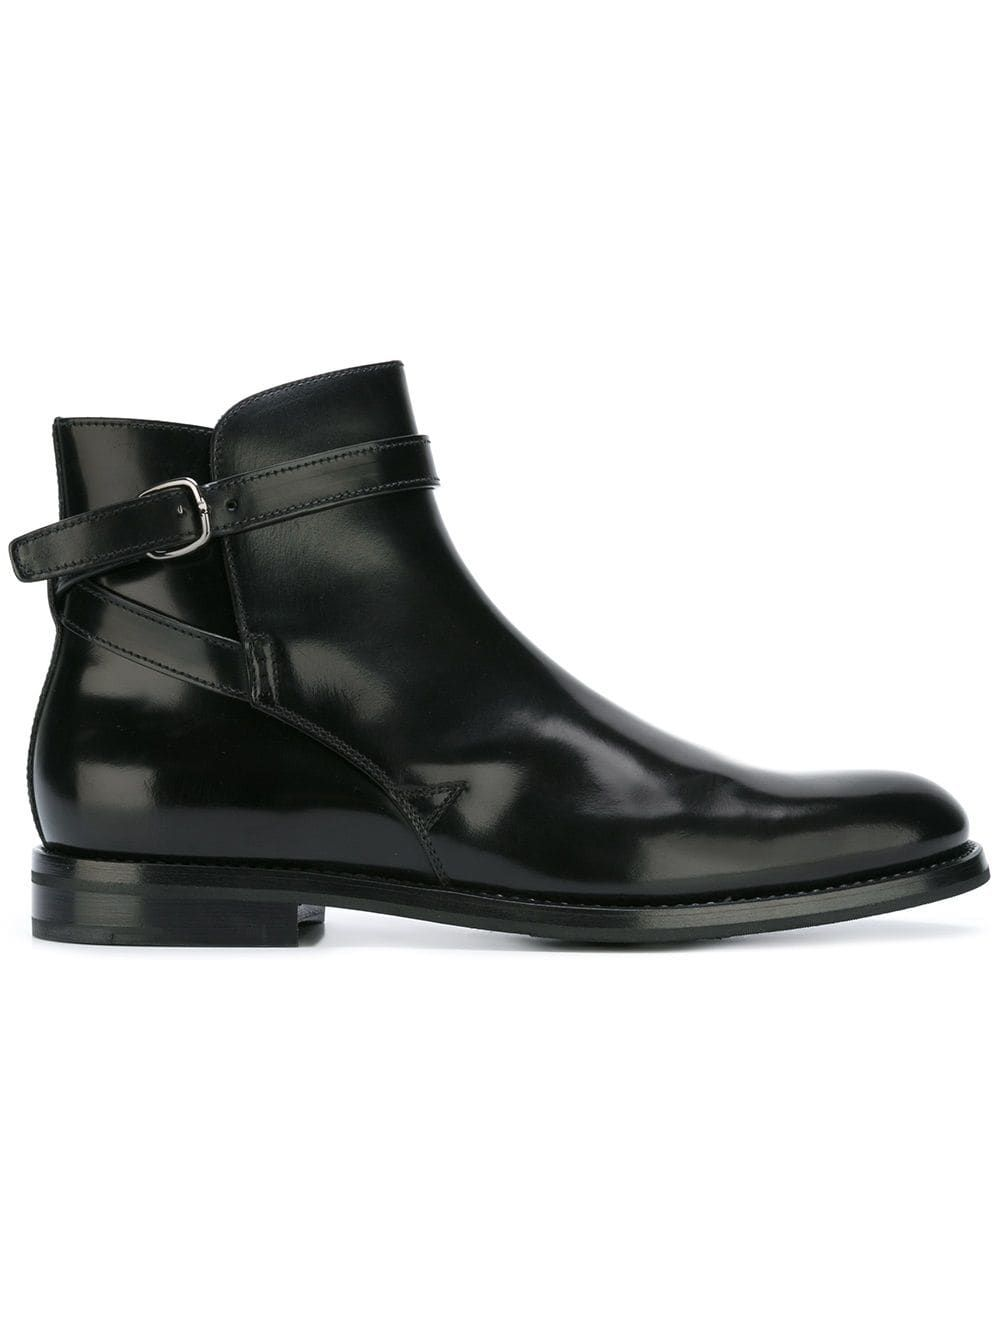 e03a8ff822 Church's 'Merthyr' boots - Black in 2019 | Products | Boots ...